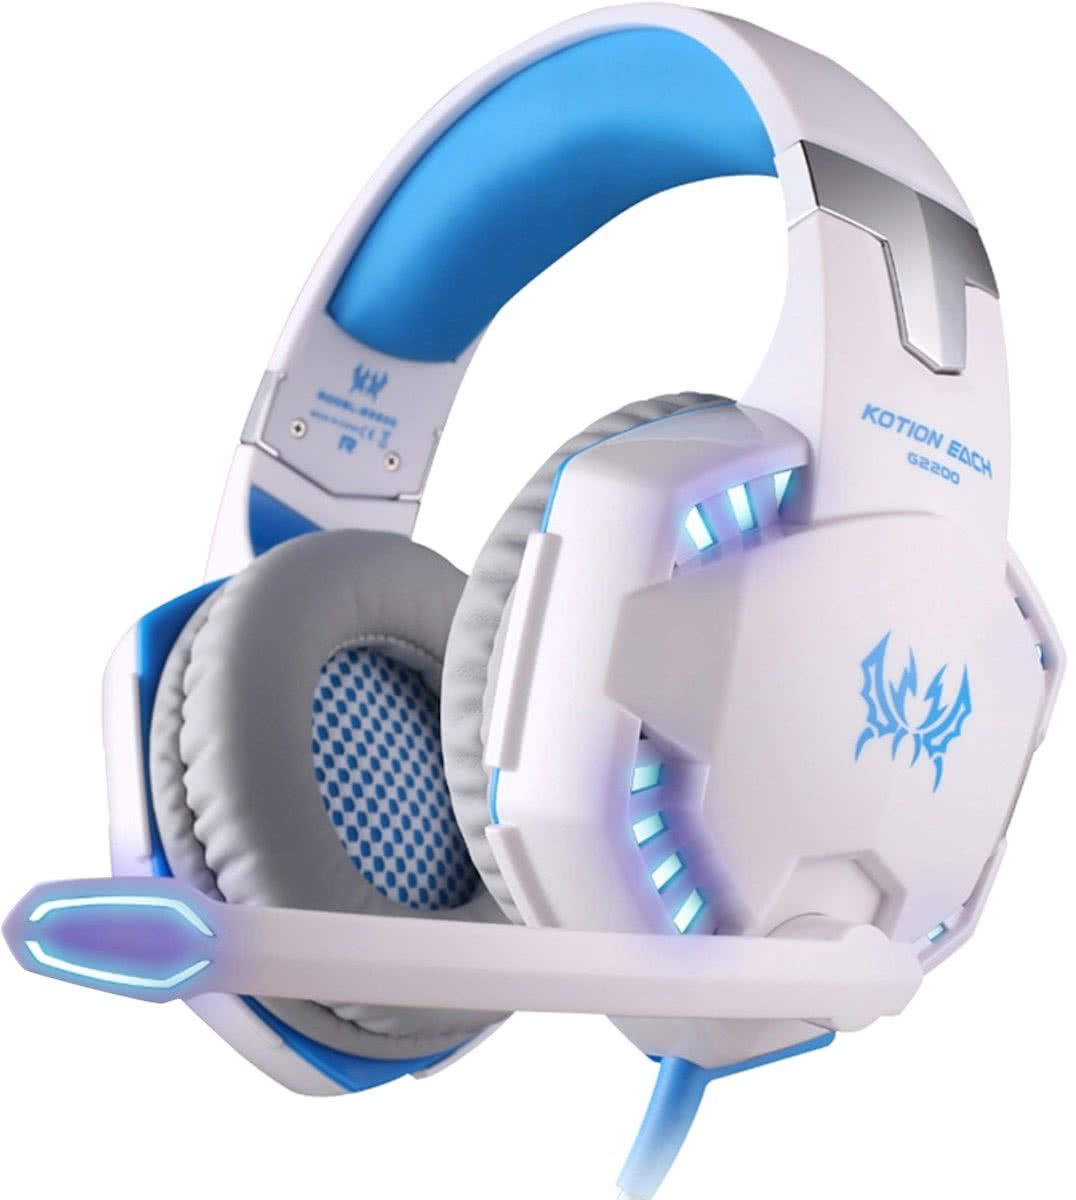 KOTION EACH G2200 USB 7.1 Surround Sound Vibration Game Gaming hoofdtelefoon Computer Headset Koptelefoon Headband met microfoon LED licht,Kabel Length: About 2.2m(White + blauw)